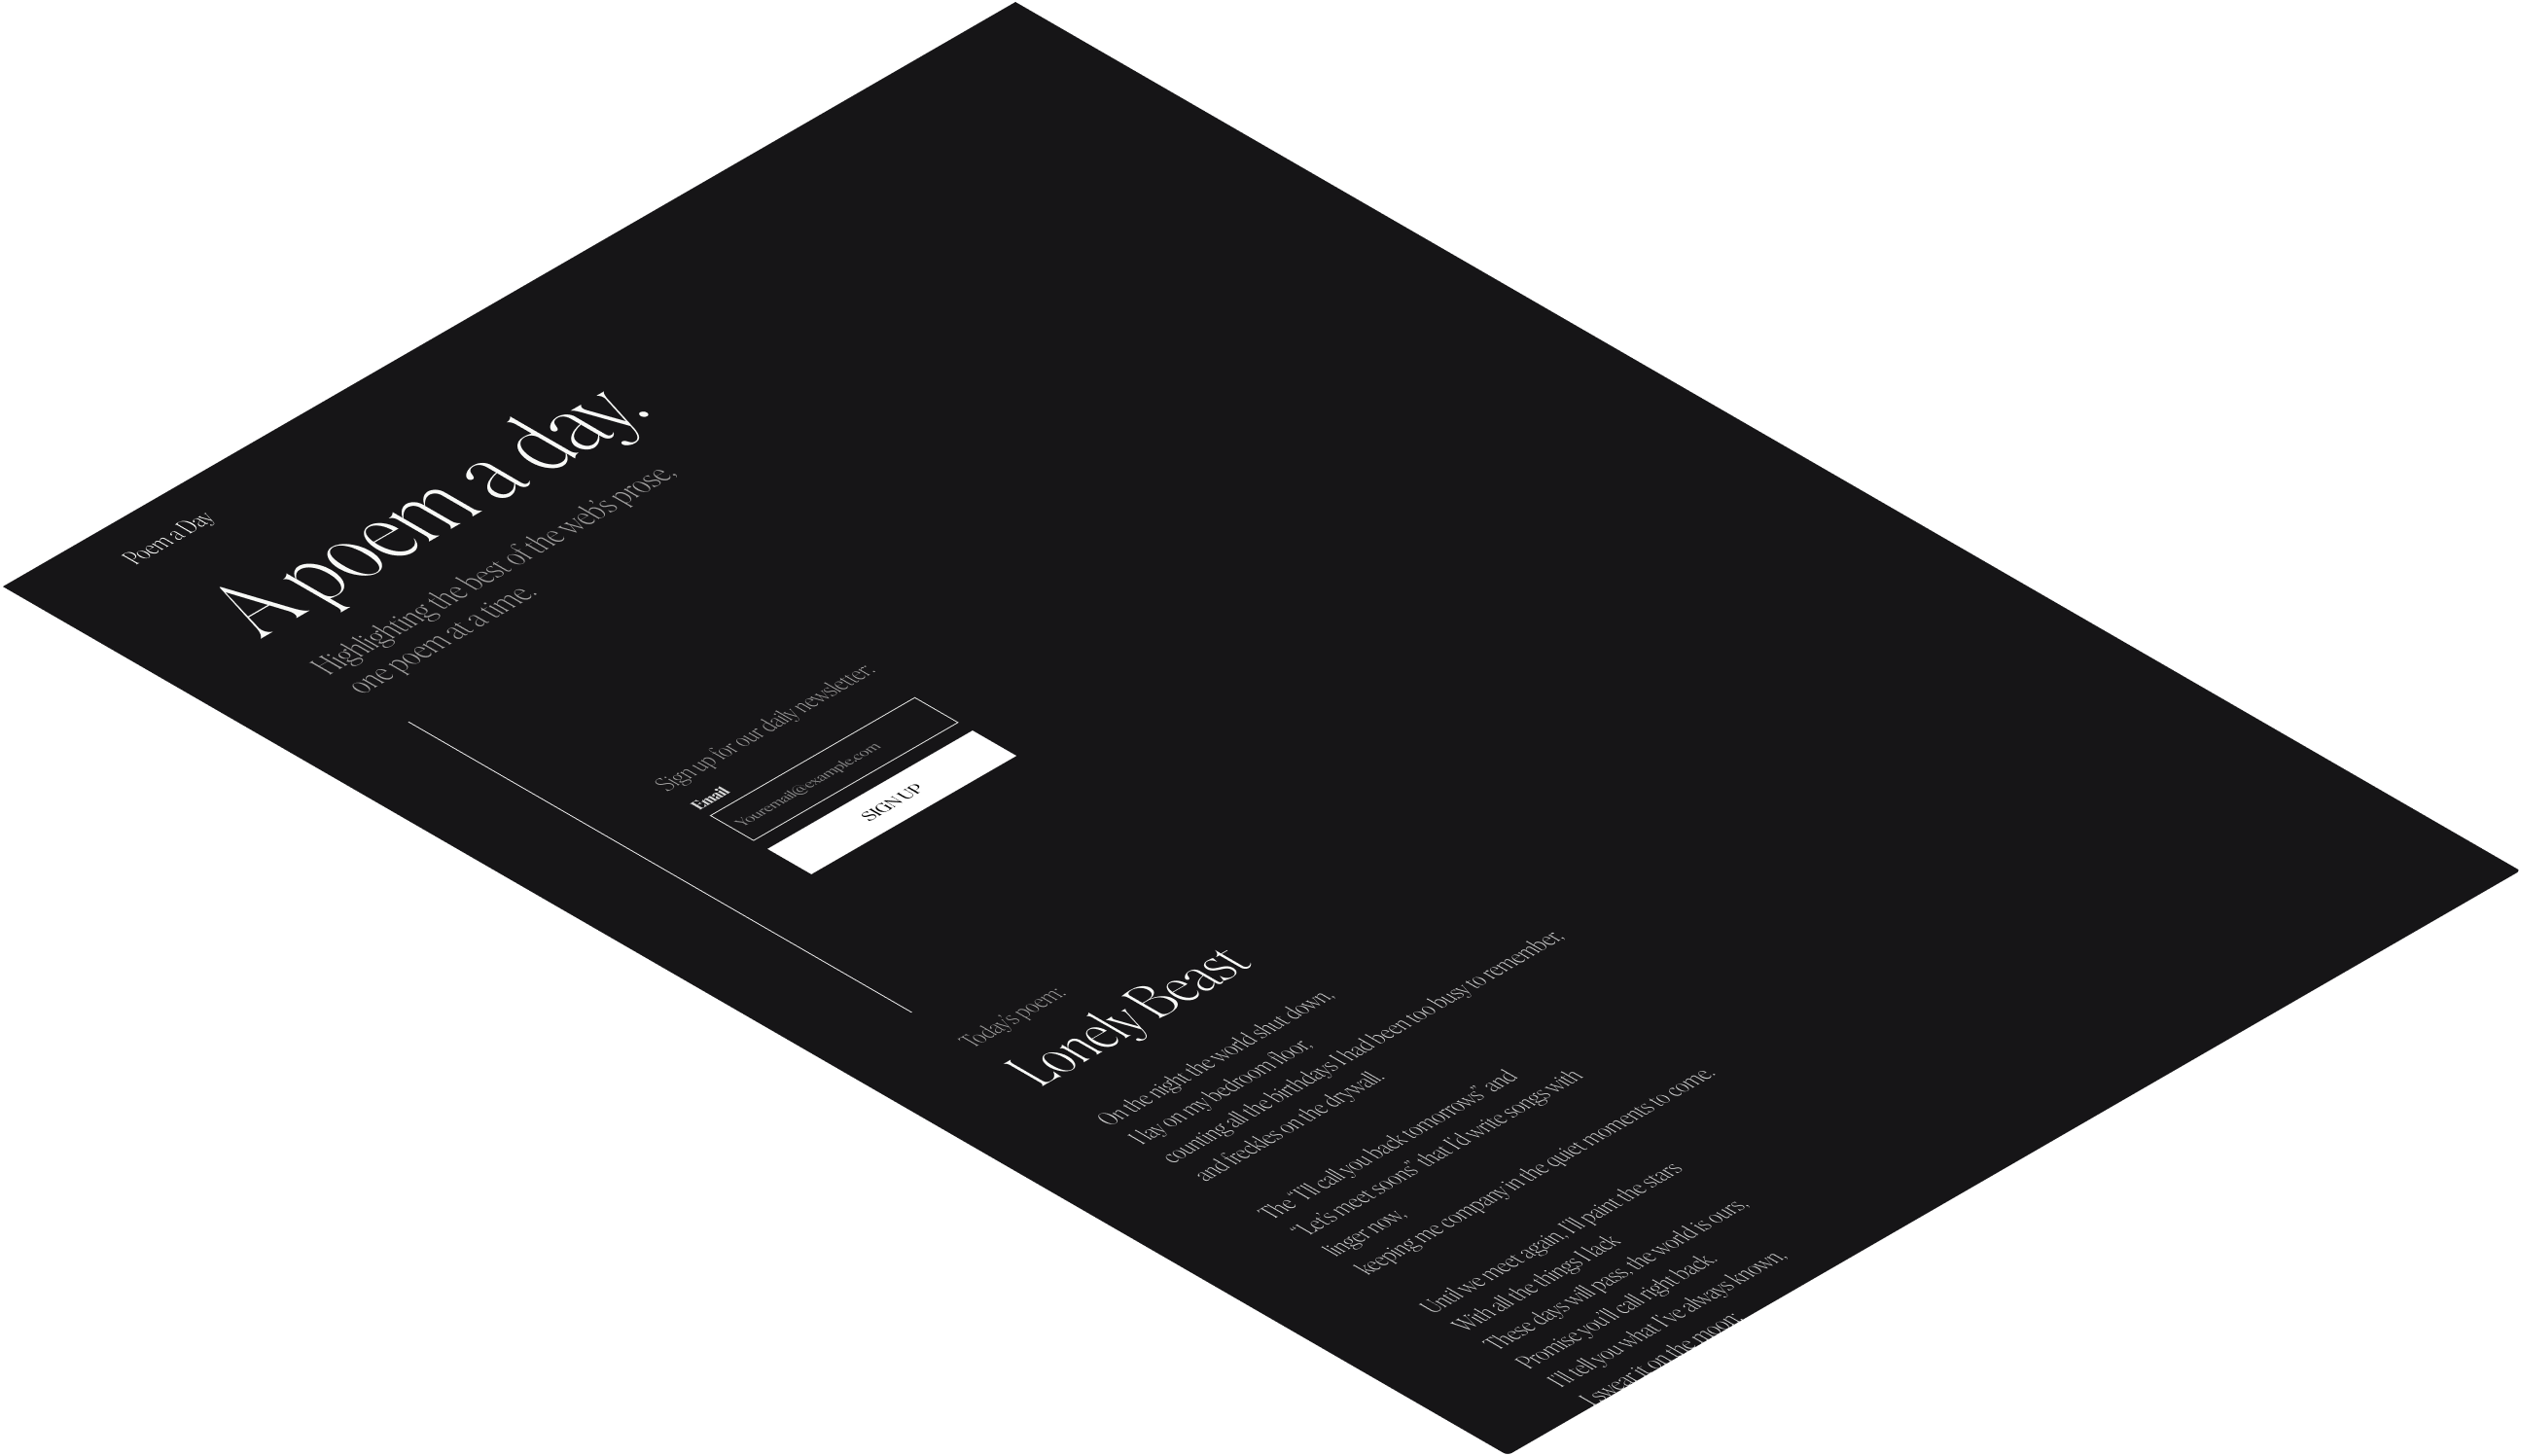 Designing a landing page using only typography.